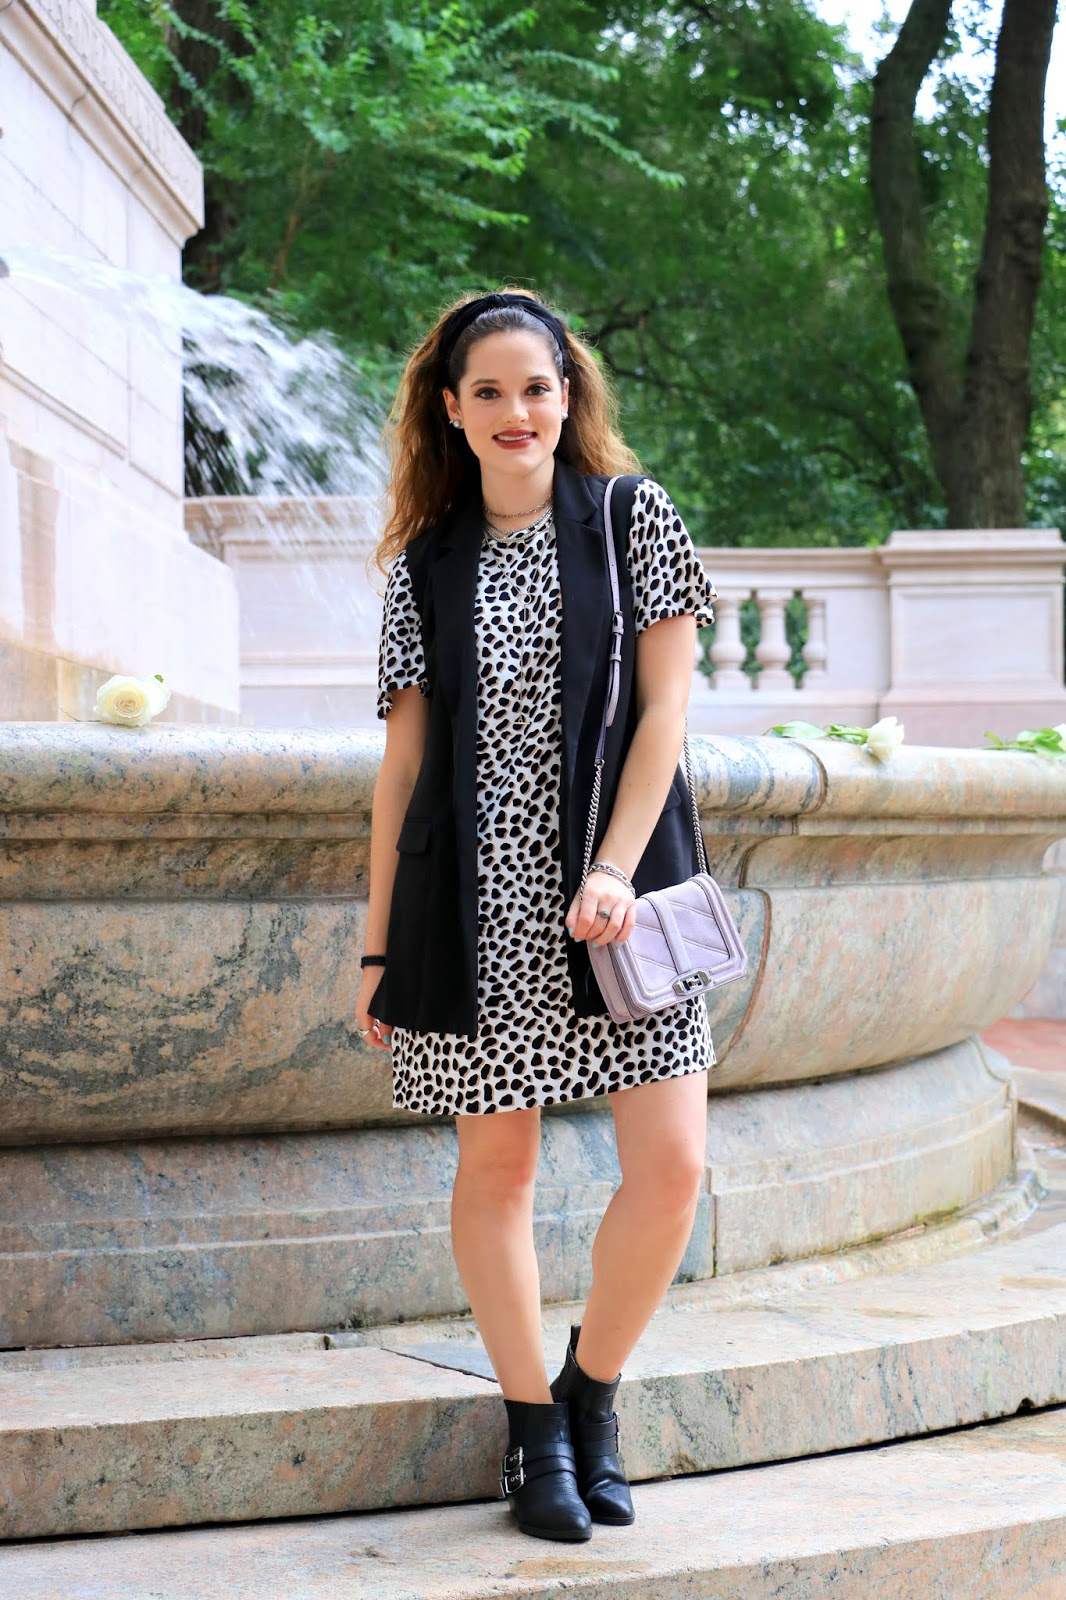 Nyc fashion blogger Kathleen Harper's leopard outfit ideas